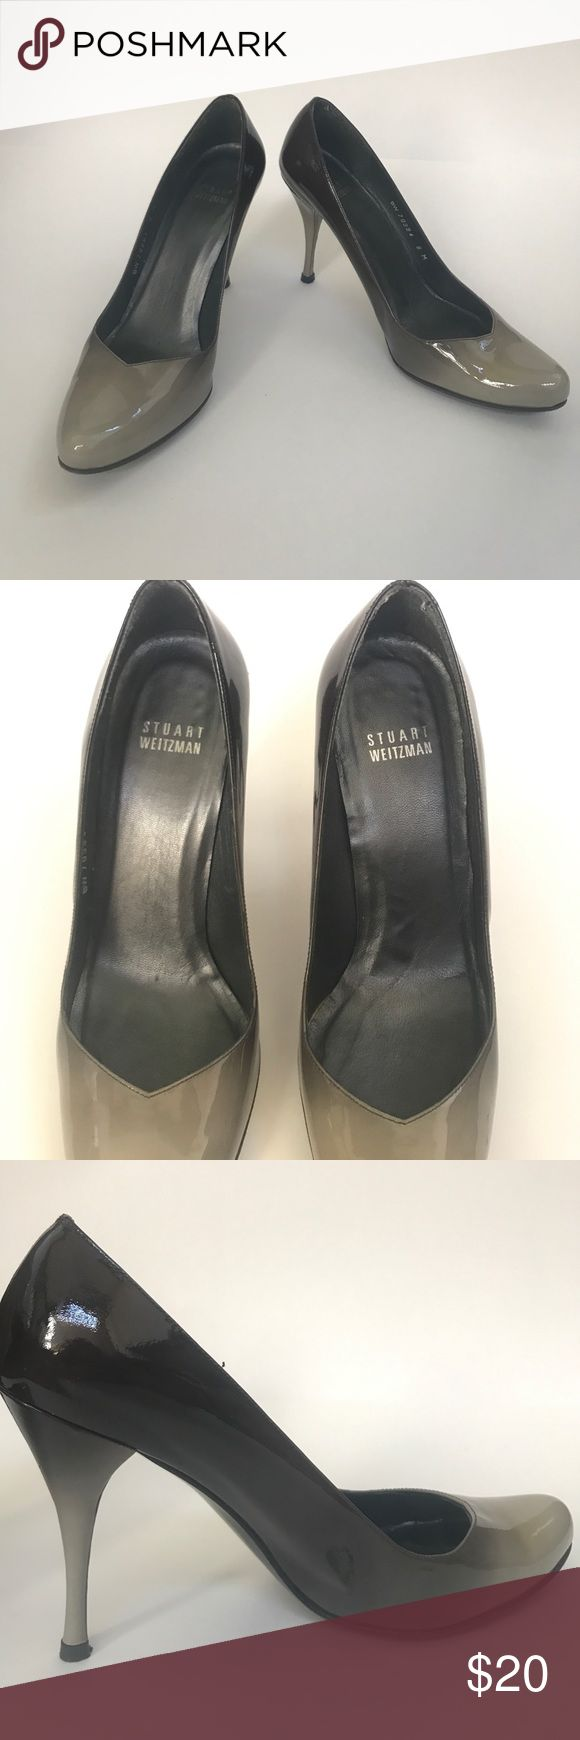 Stuart Weitzman Two Tone Pumps (Worn) These are Stuart Weitzman Two Tone Pumps (Worn). Worn once. There are discolorations (I believe it was from pressing against other shoes in closet) on the left heel as seen in pics. Patent leather. Made in Spain. If you don't mind the discolorations/flaws I say this is a good buy. The two tone color is gorgeous! Stuart Weitzman Shoes Heels